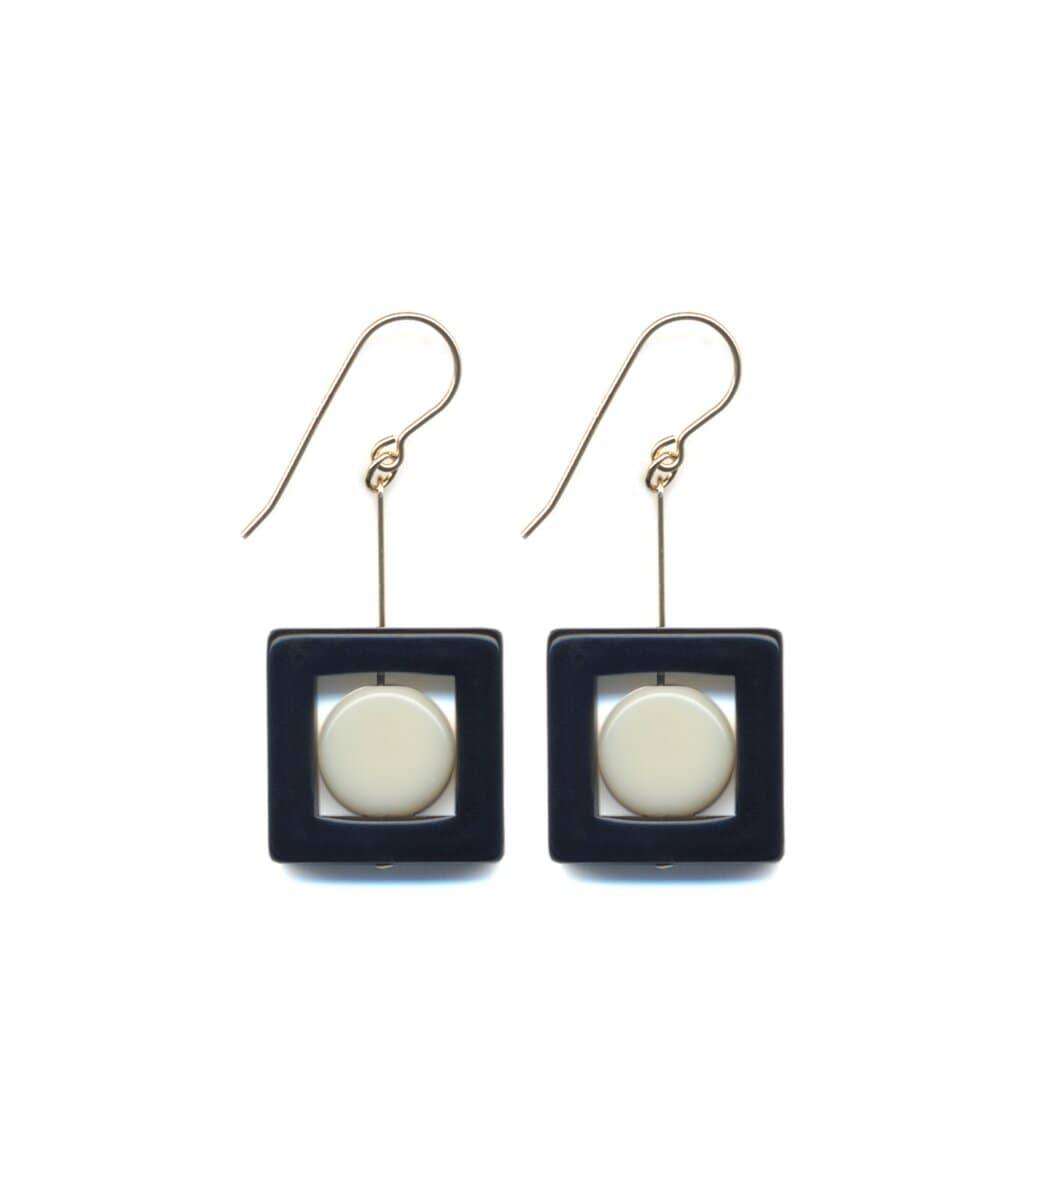 Irk Jewelry I. Ronni Kappos E1689 Black Square Drop Earrings